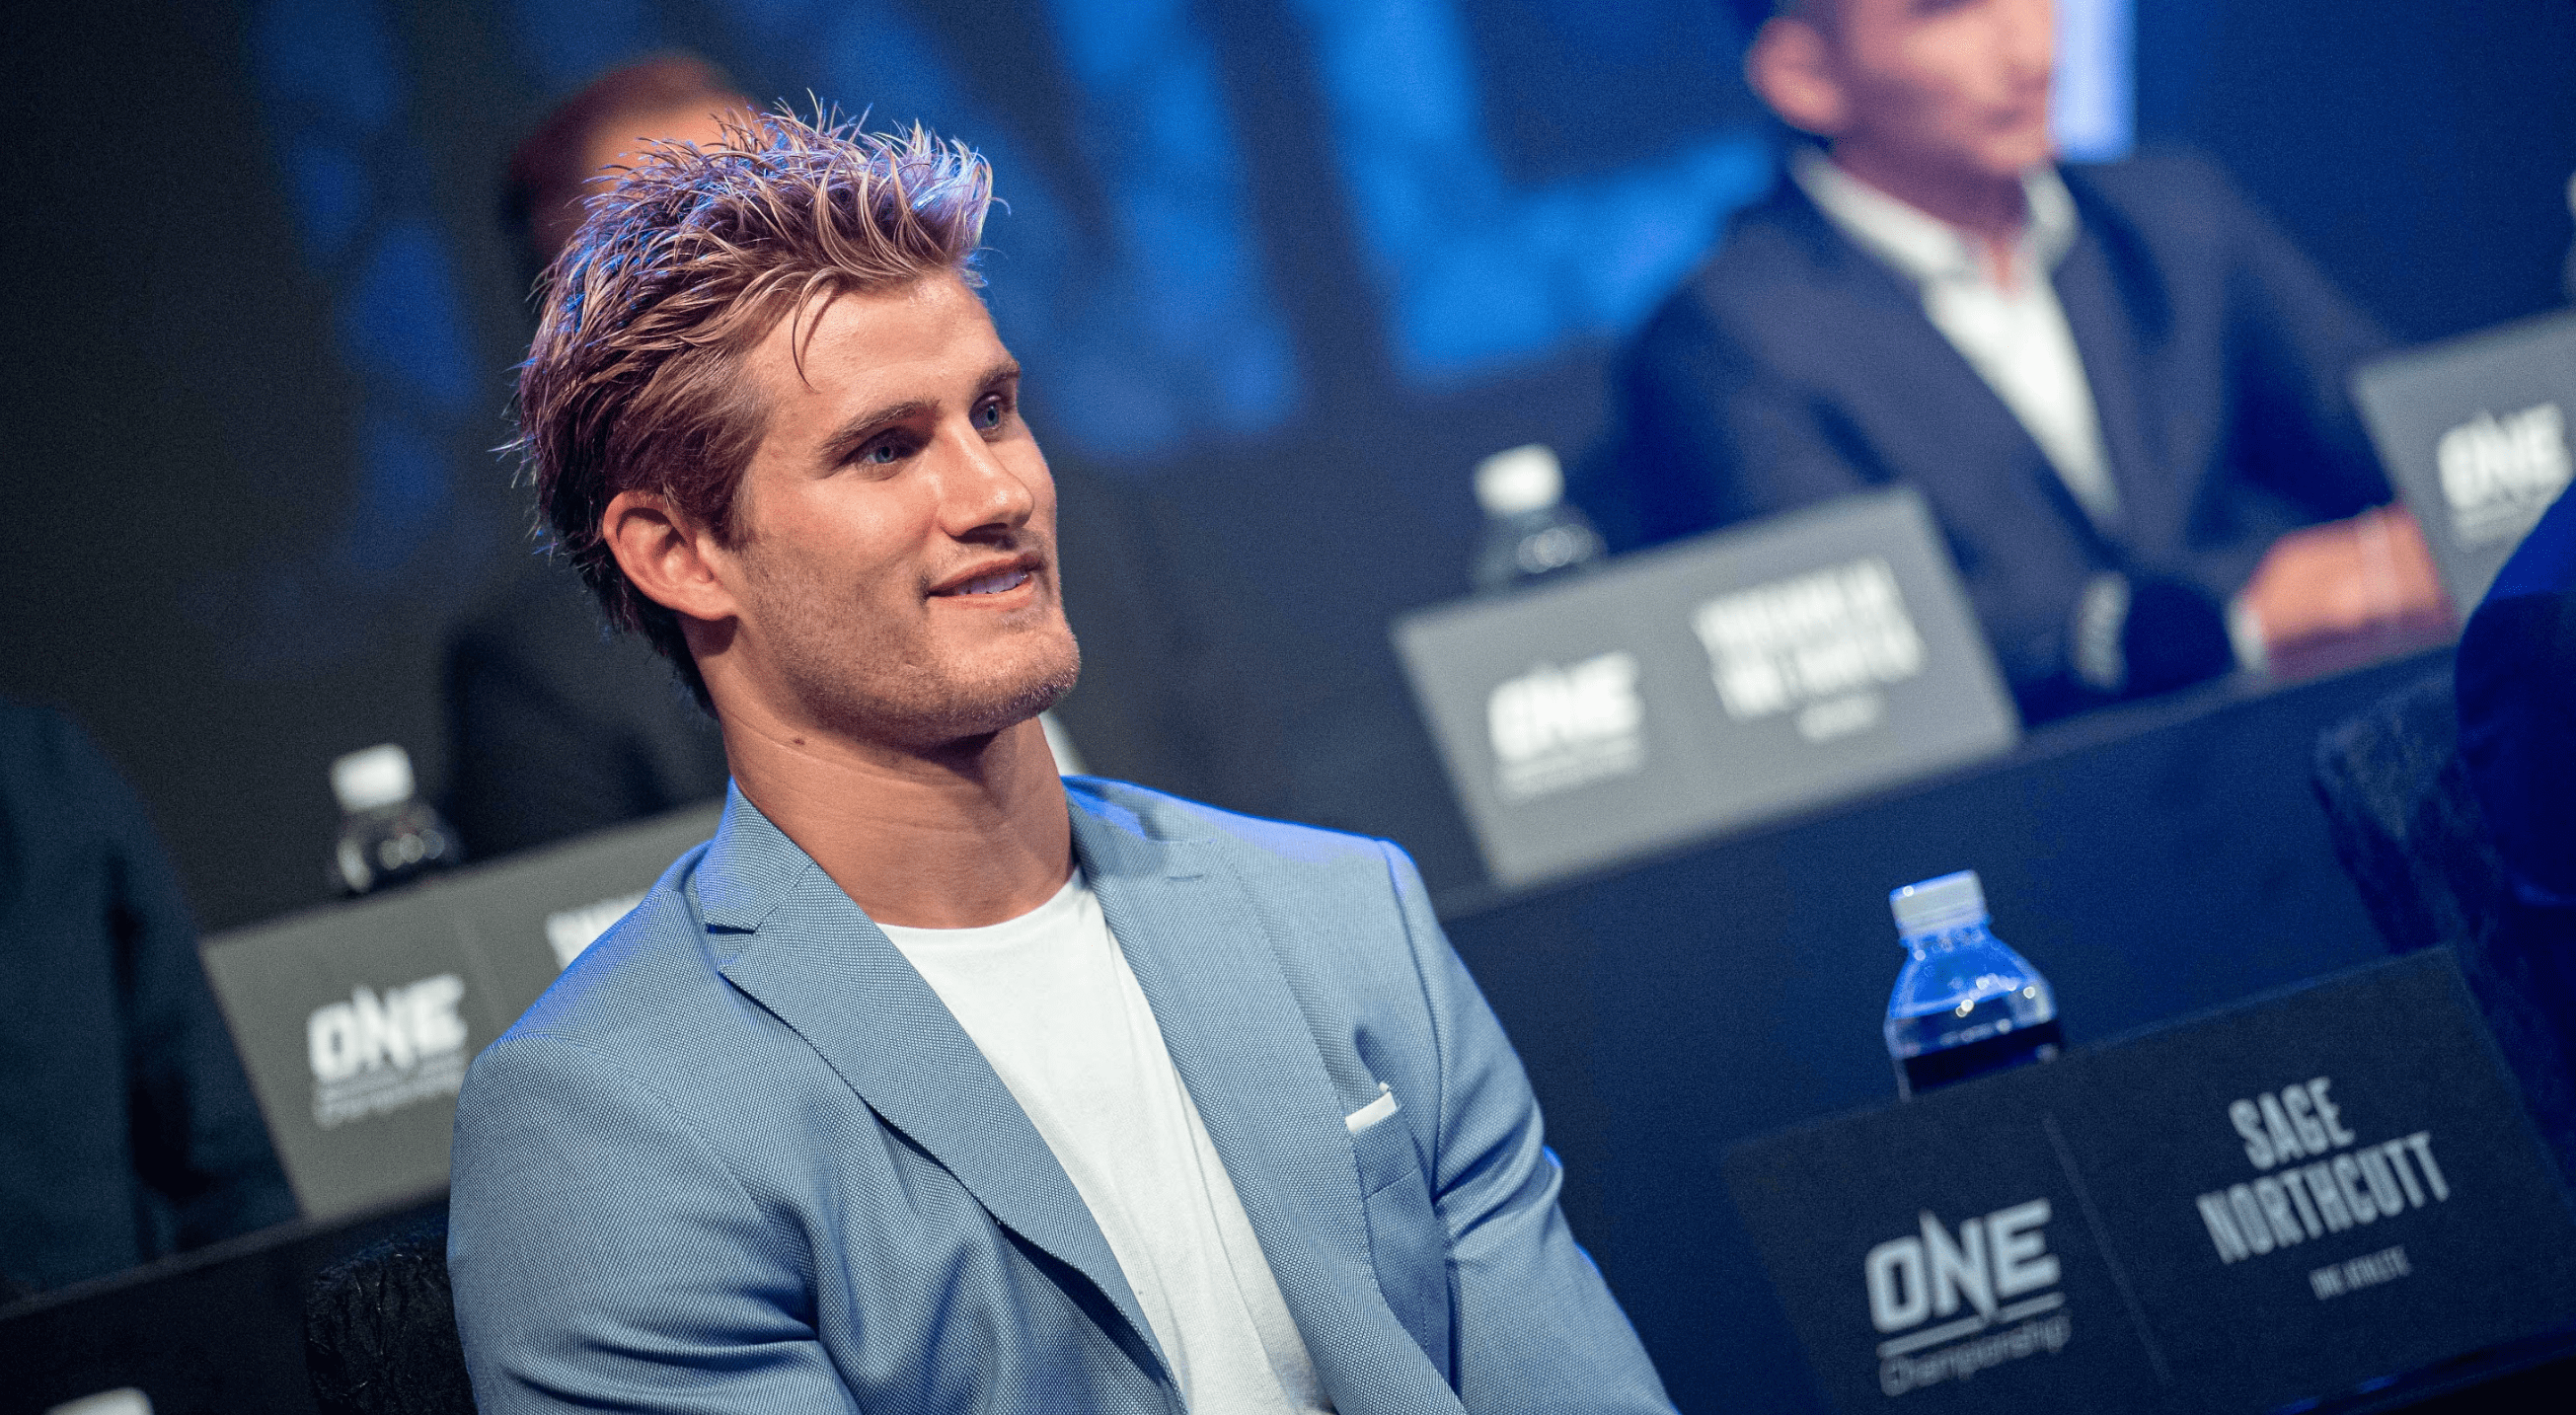 Sage Northcutt: It'll Be Super Cool To Fight In A Ring At Enter The Dragon